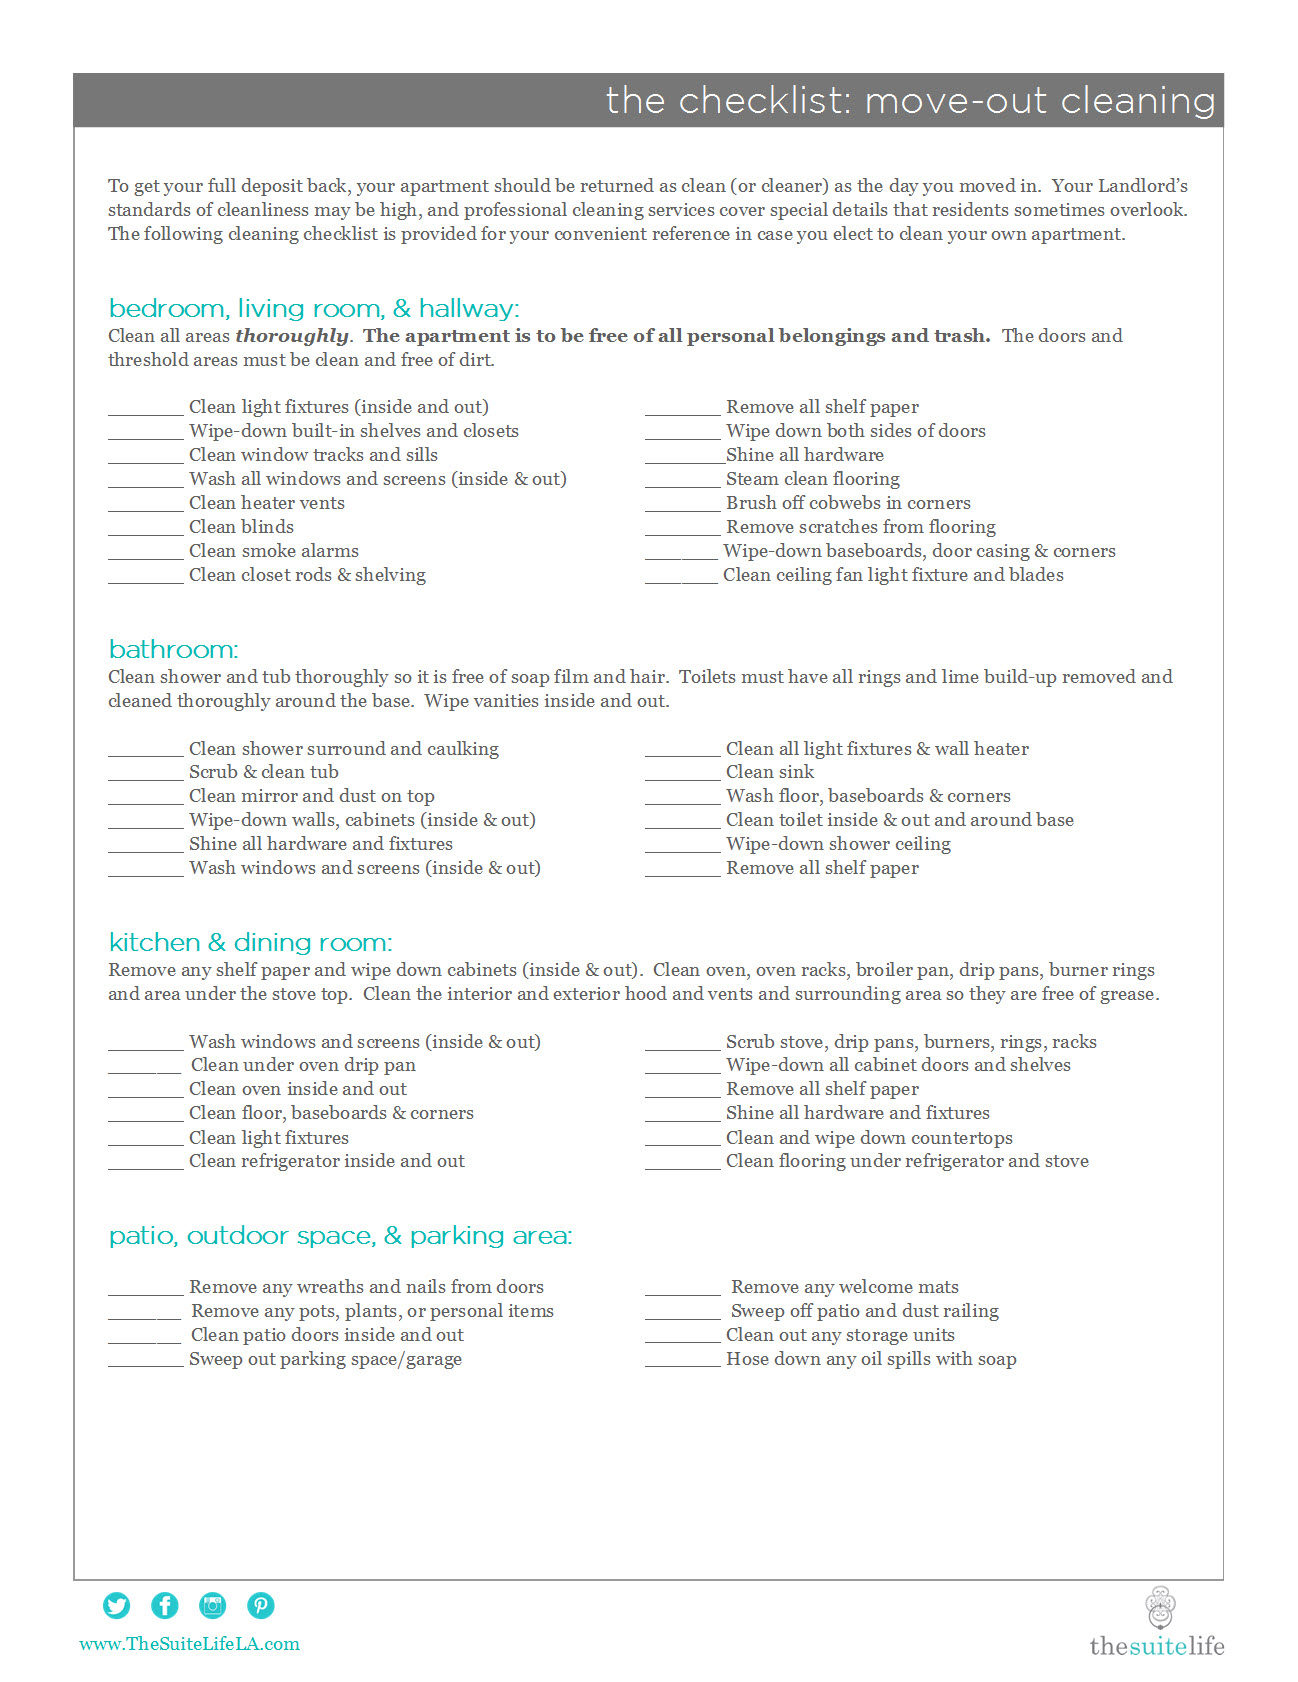 Apartment Movein Checklist Apartment Move Out Cleaning Checklist In ...